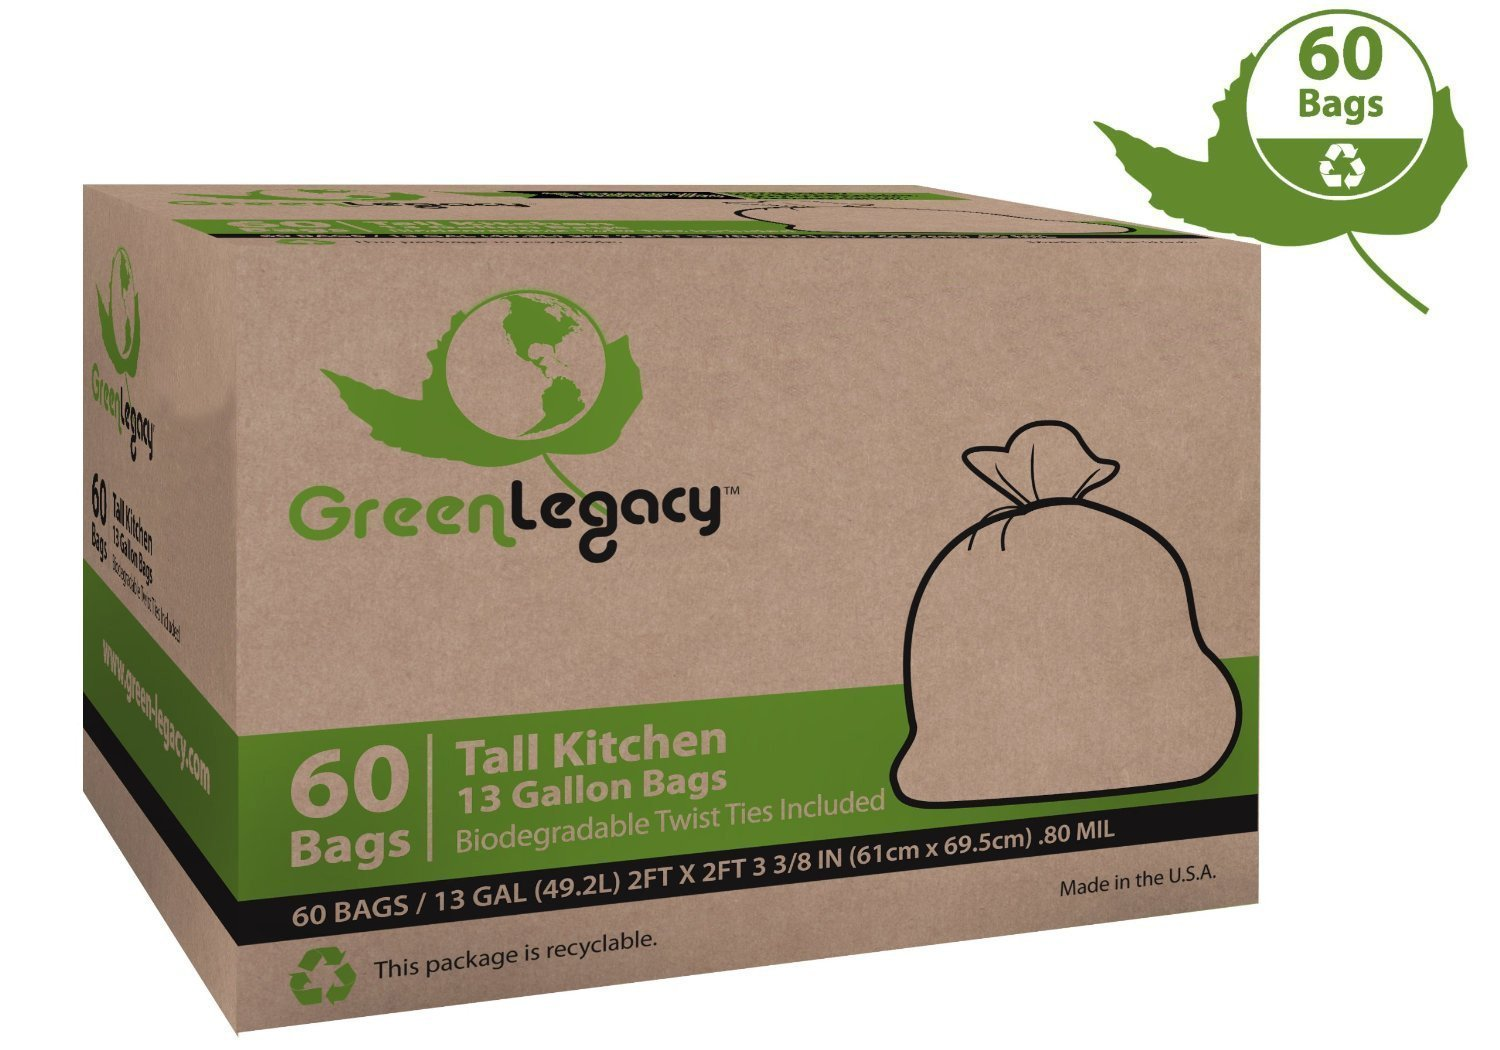 Think garbage can't be green? Think Again. Box is made from 100% recycled paper; twist ties are 100% biodegradable. Made in the USA.